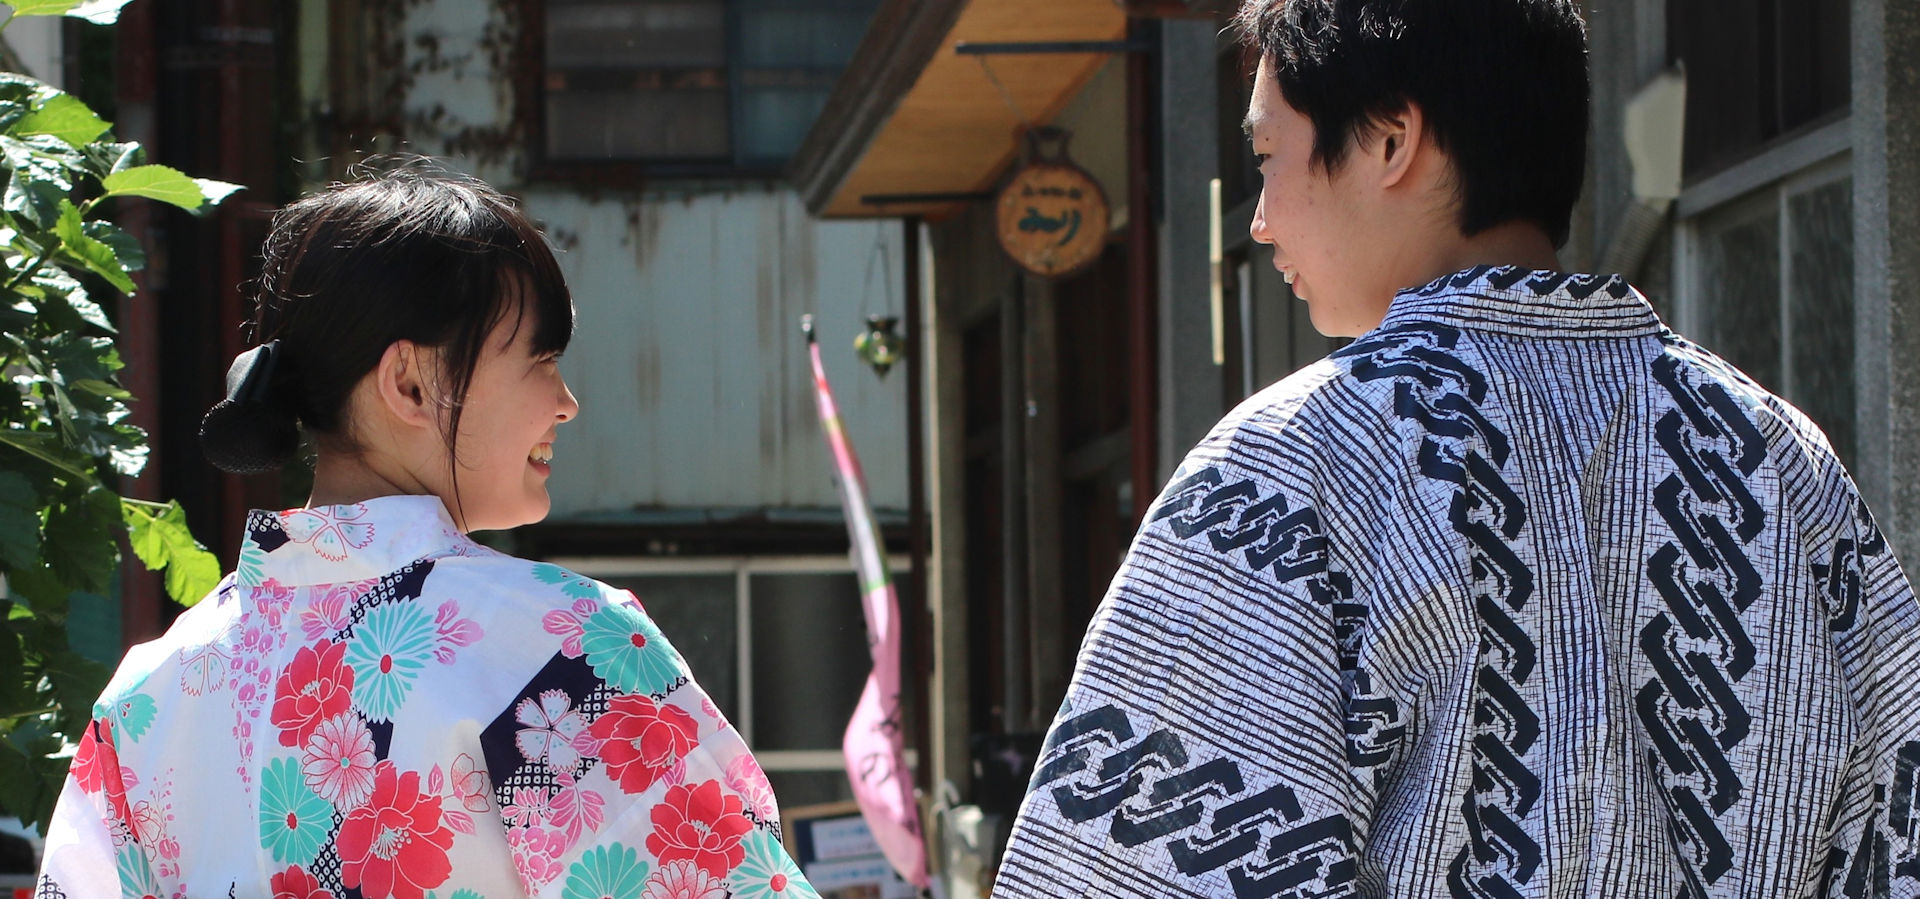 Japanese Clothing Activities